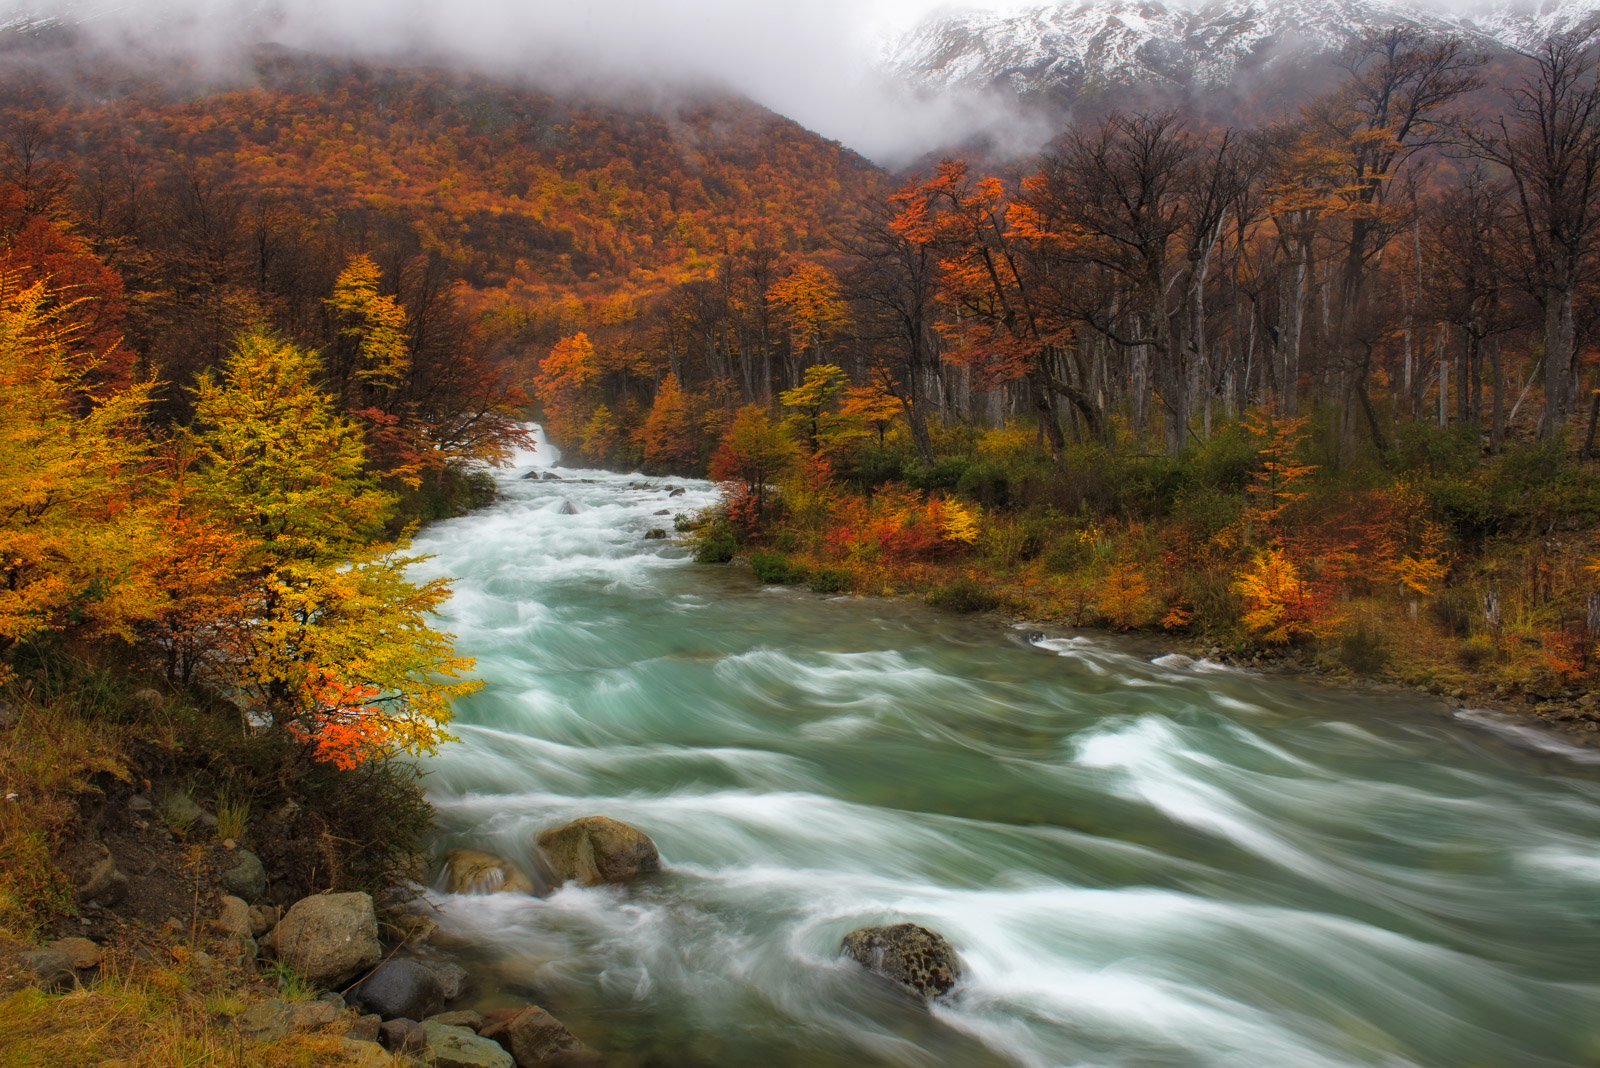 Limited Edition of 50 River running through a lush Lenga Forest in the Patagonia region of Argentina.